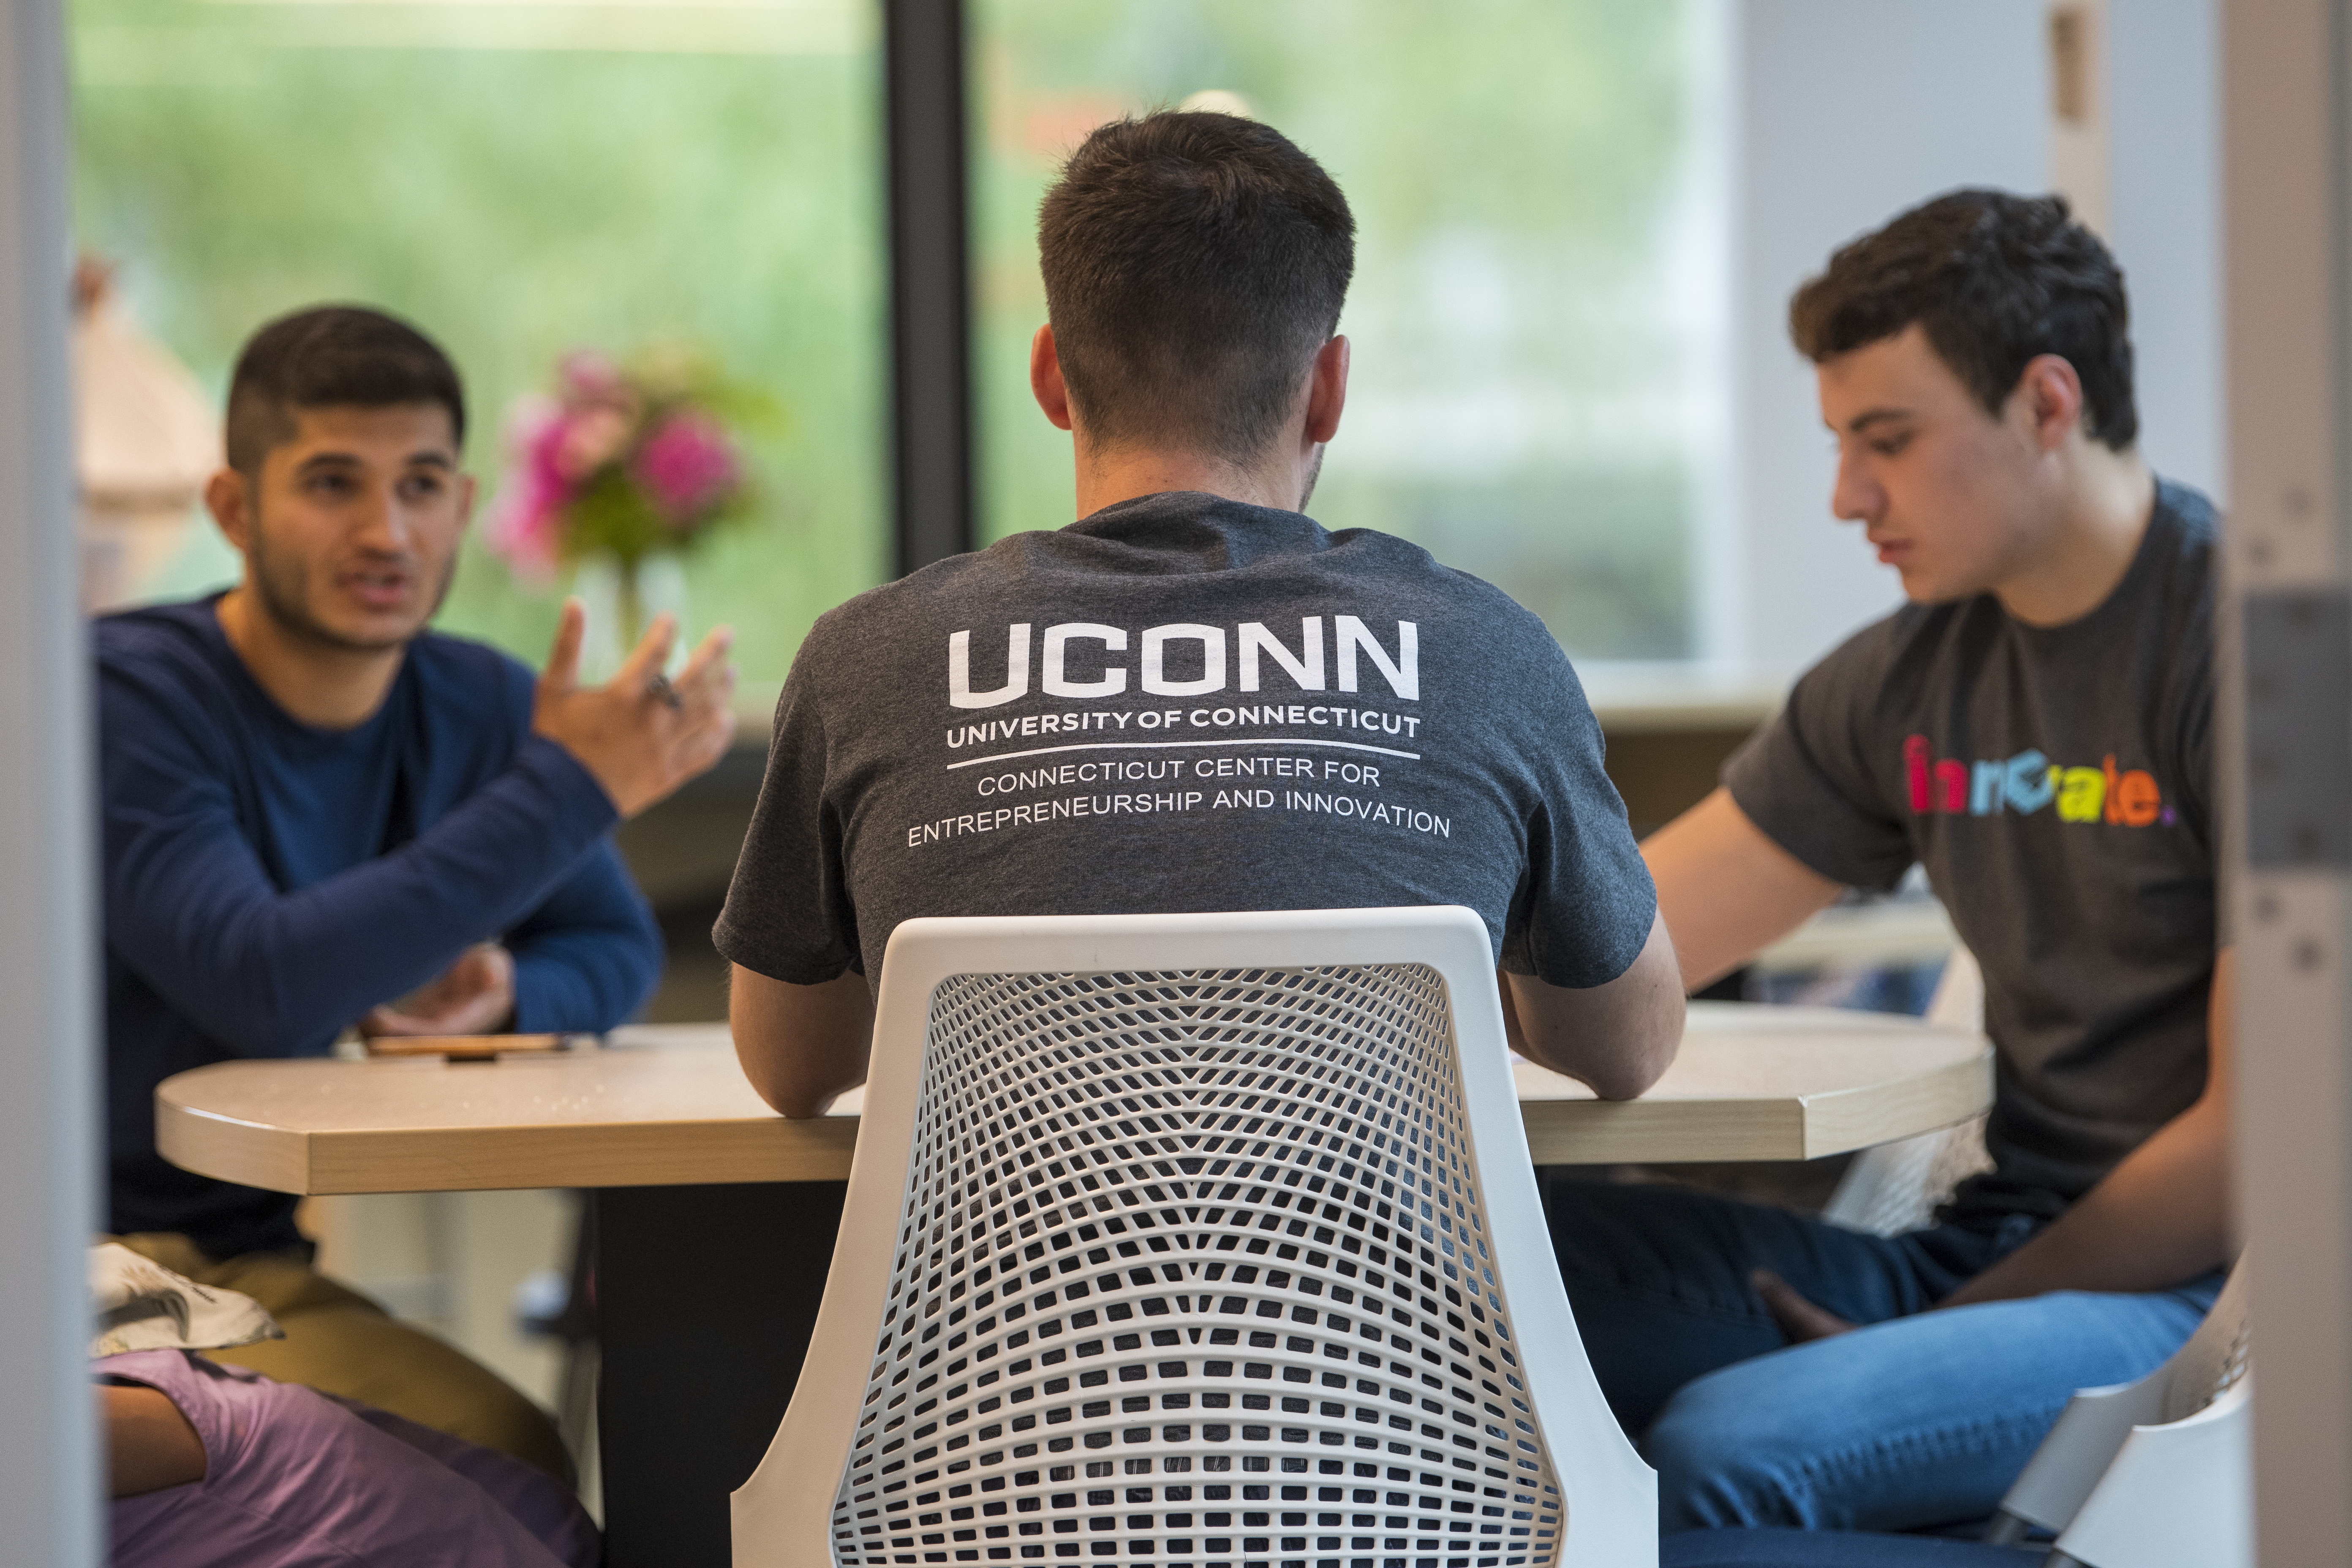 School of Business students at Connecticut Center for Entrepreneurship and Innovation CCEI in Hartford on June 18, 2019. (Sean Flynn/UConn Photo)